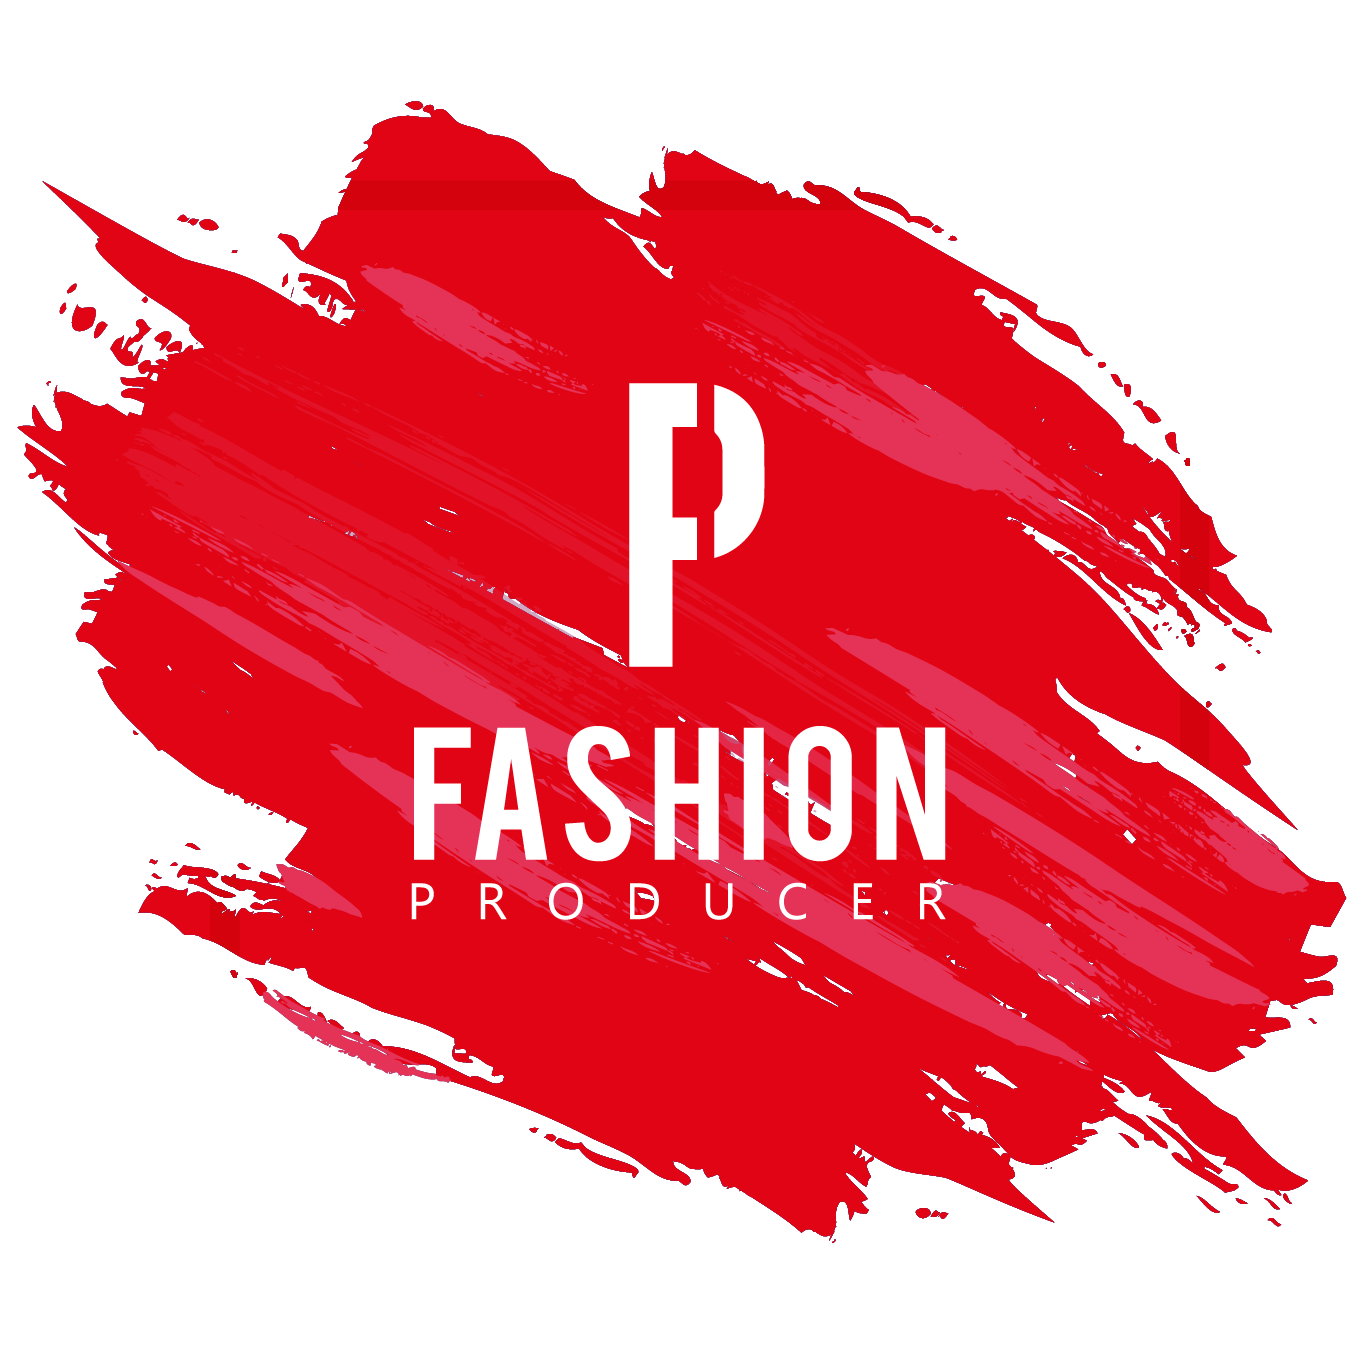 Fashion Producer by Fer Castello